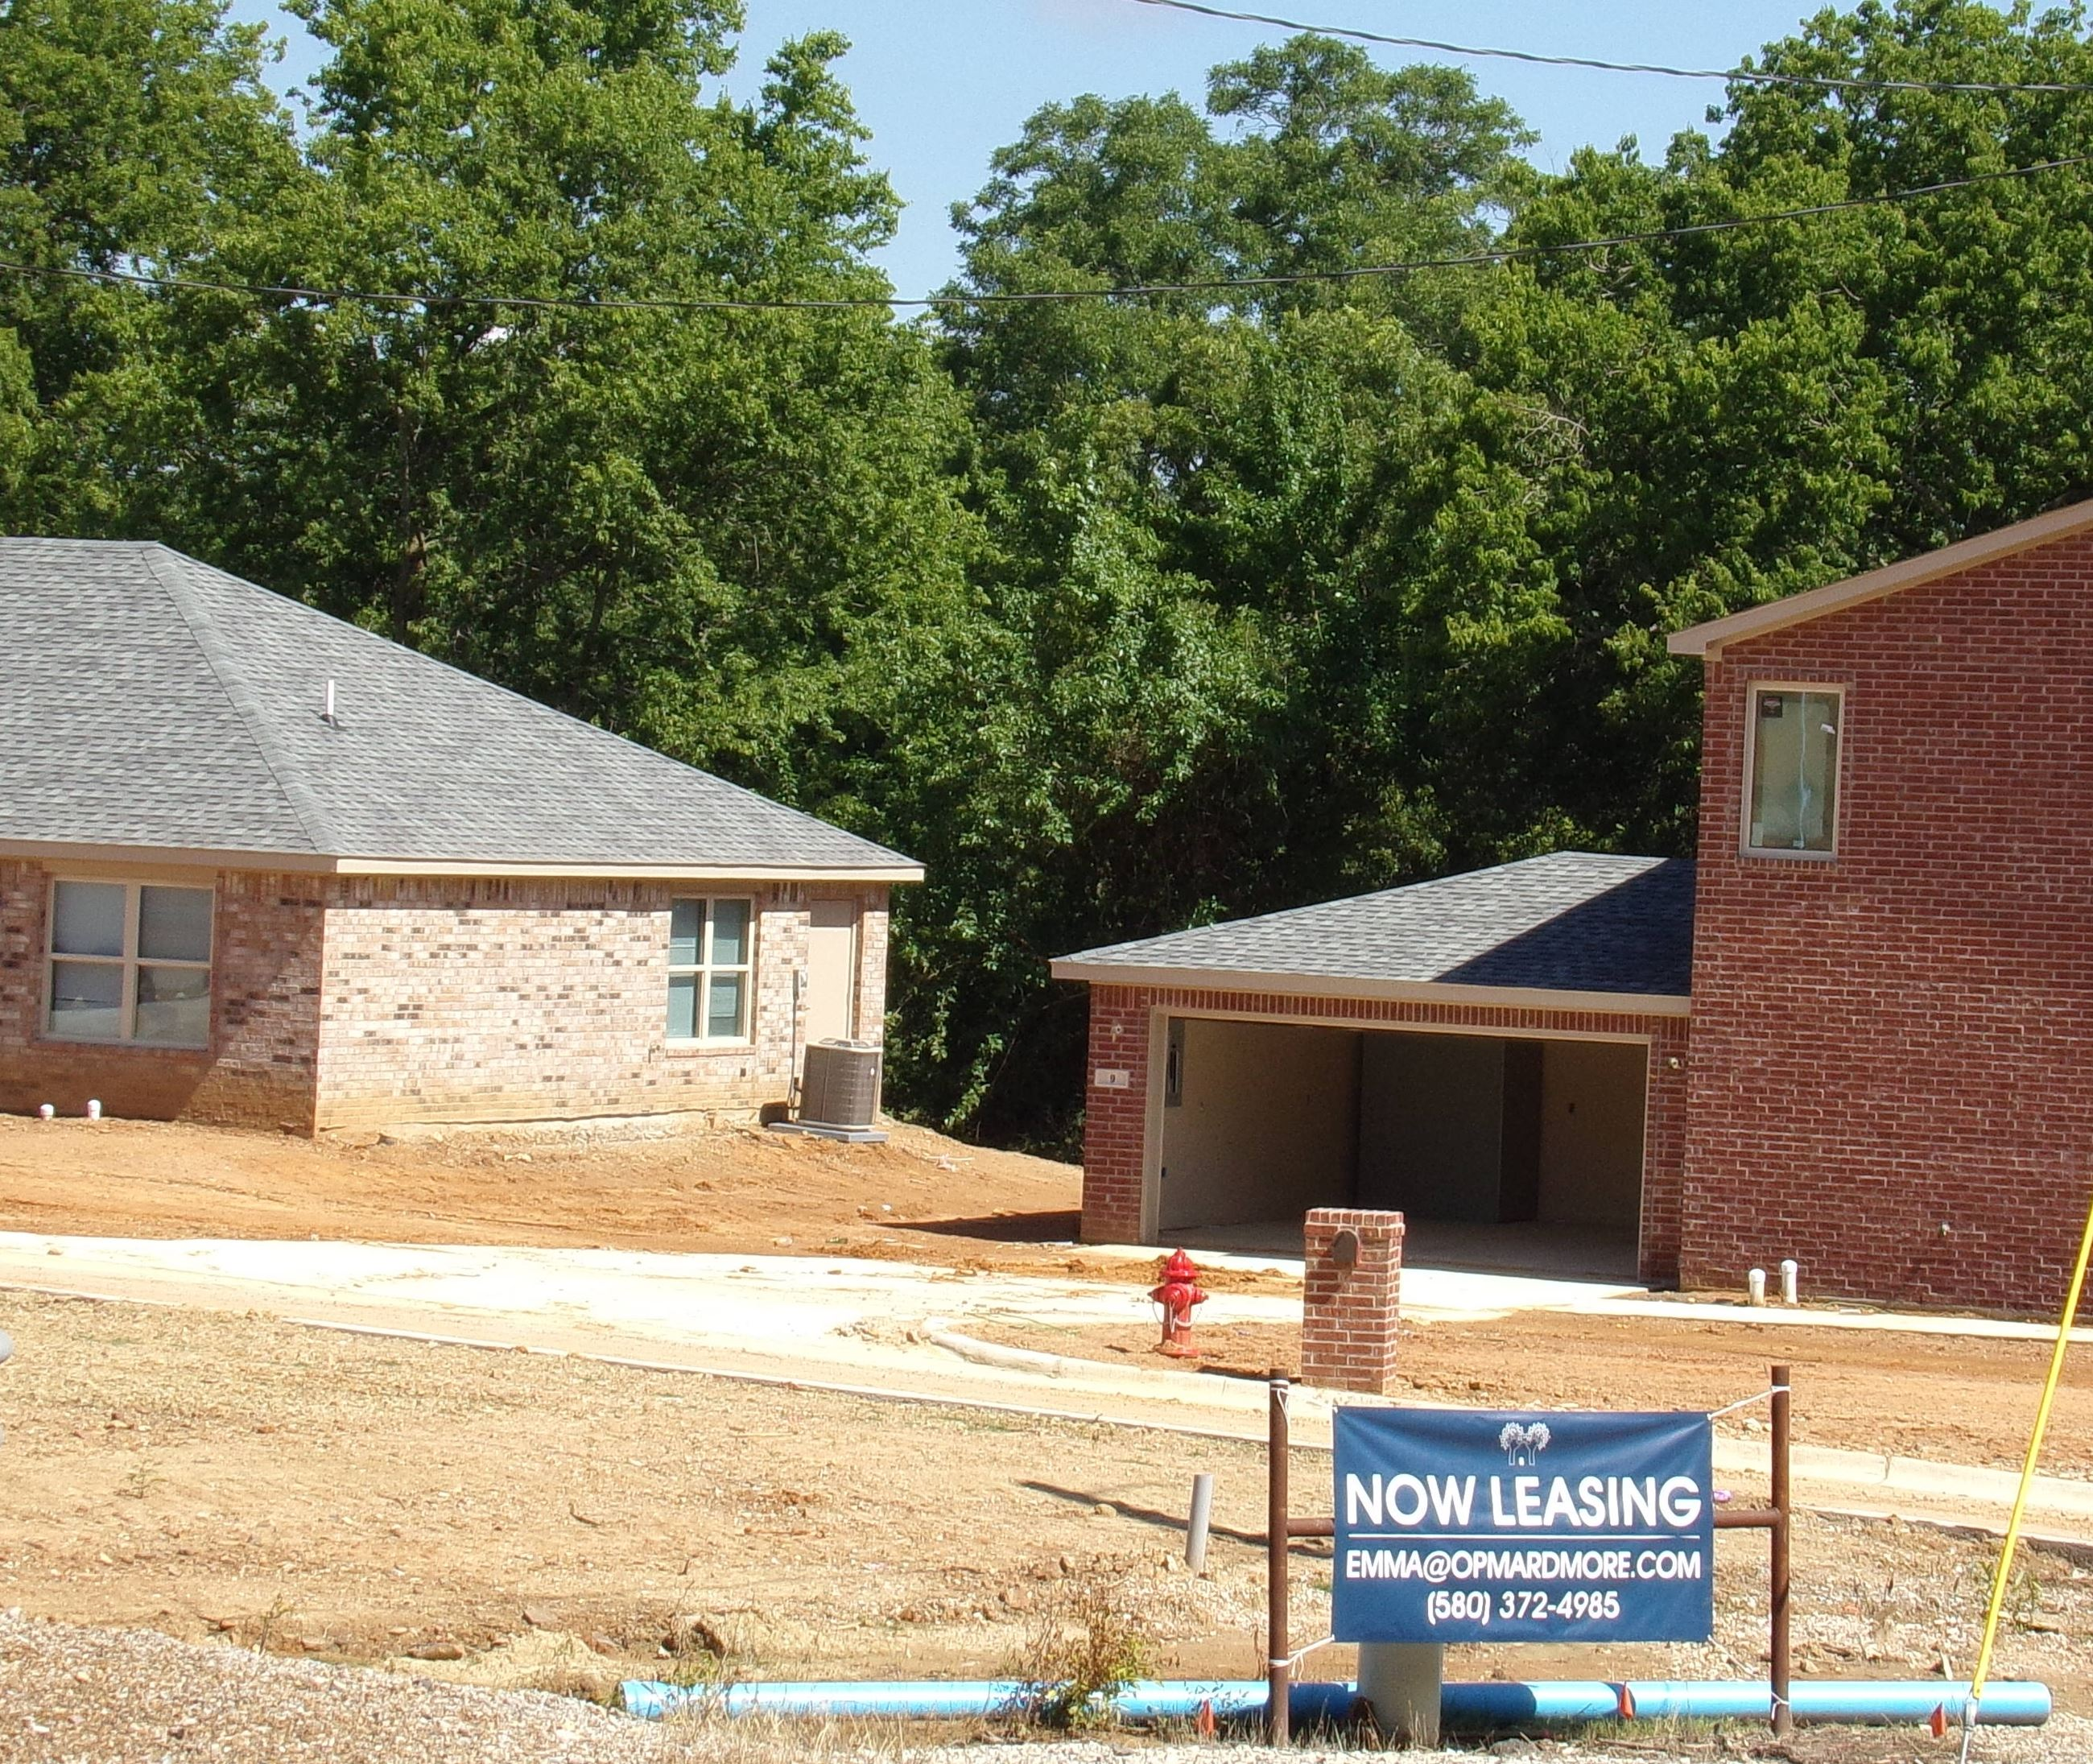 Progress on the Dunbar Housing Addition